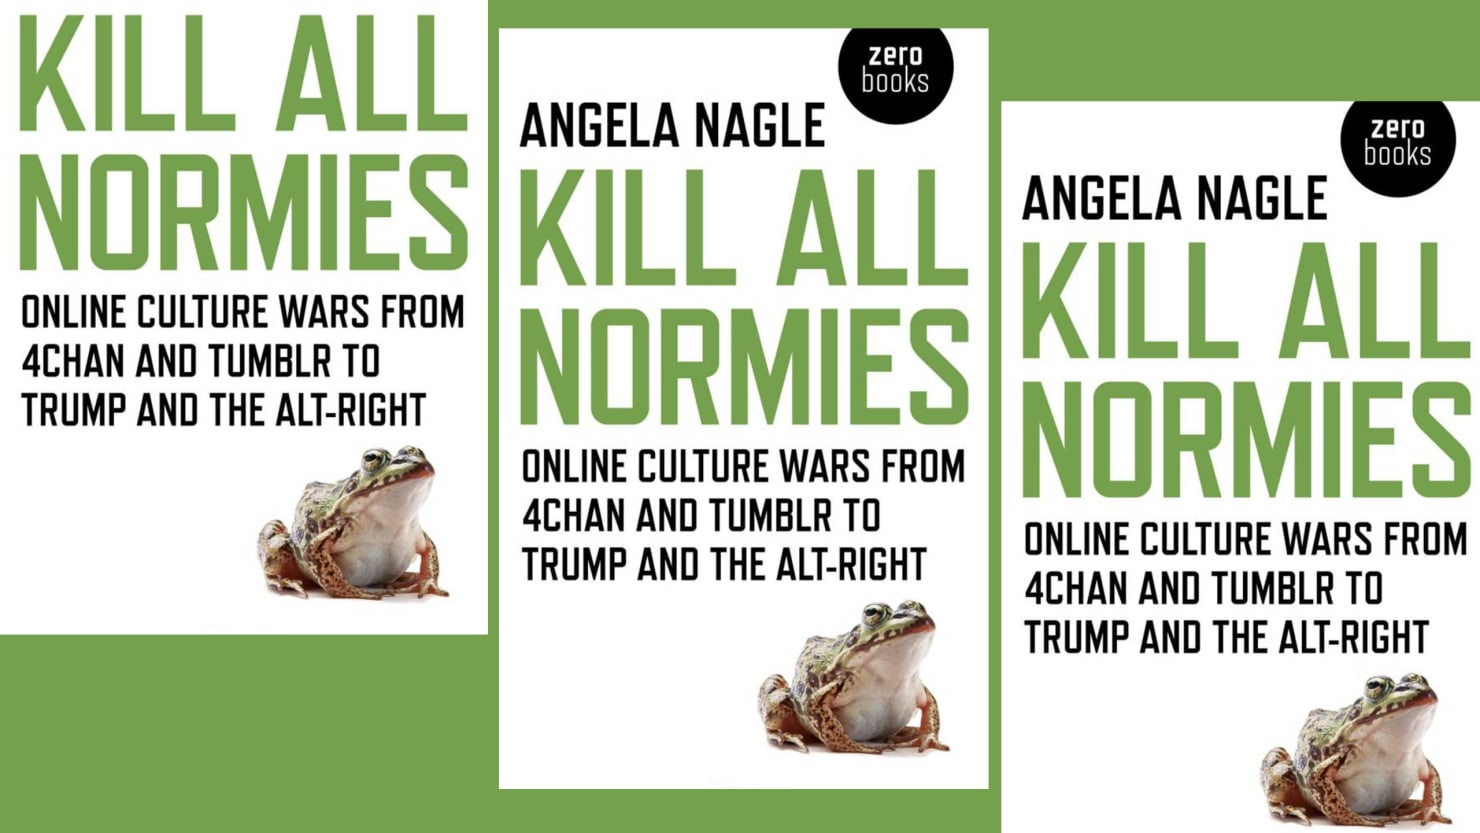 Sloppy Sourcing Plagues 'Kill All Normies' Alt-Right Book